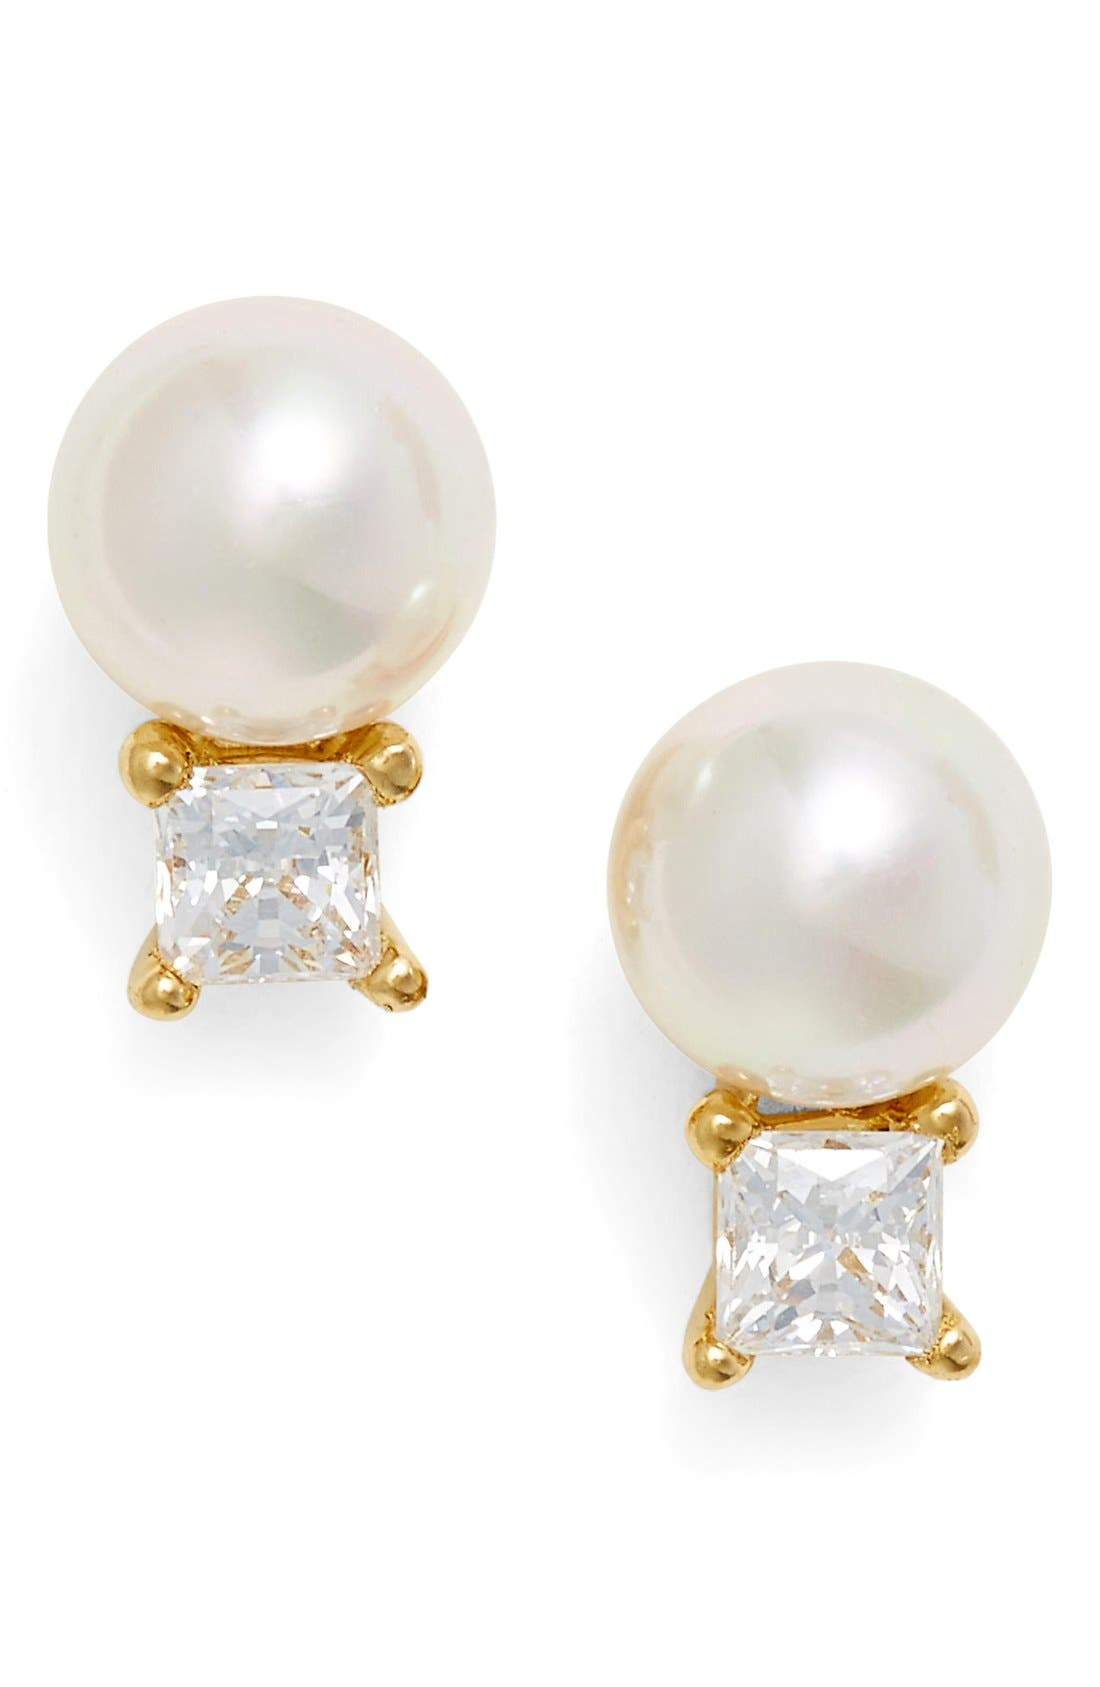 Cubic Zirconia & Faux Pearl Stud Earrings,                         Main,                         color, WHITE